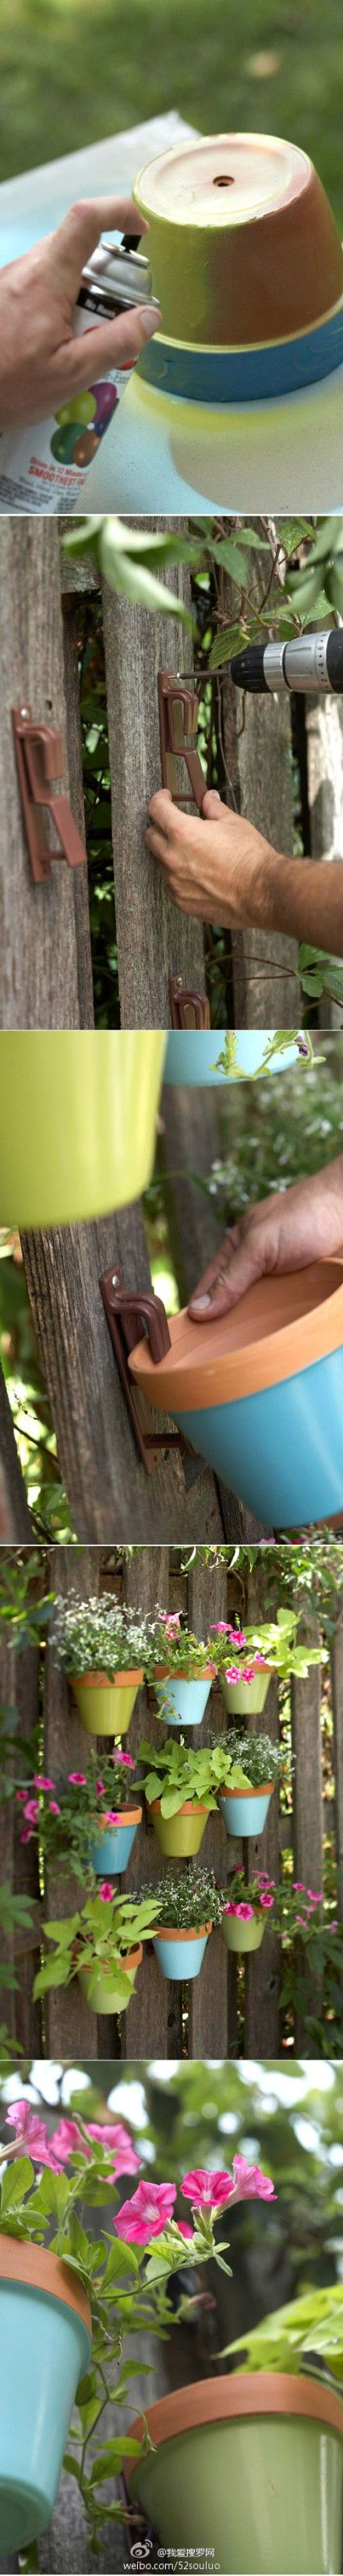 Decorate a fence with hanging flower pots